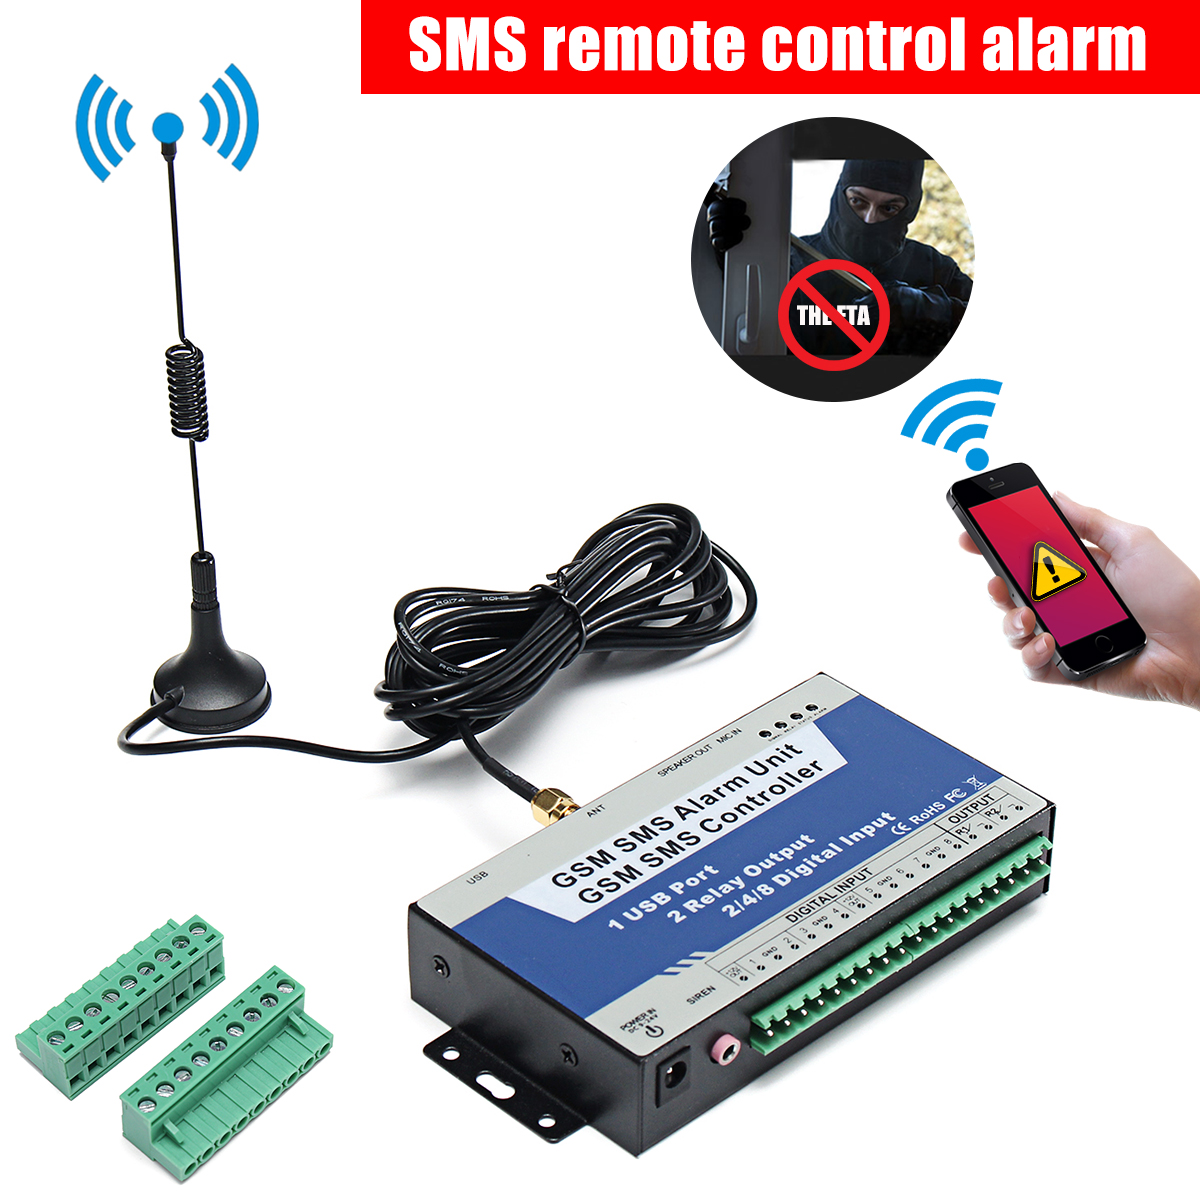 S150 GSM SMS USB Remote Controller Alarm Security Switch System Fit Android IOS